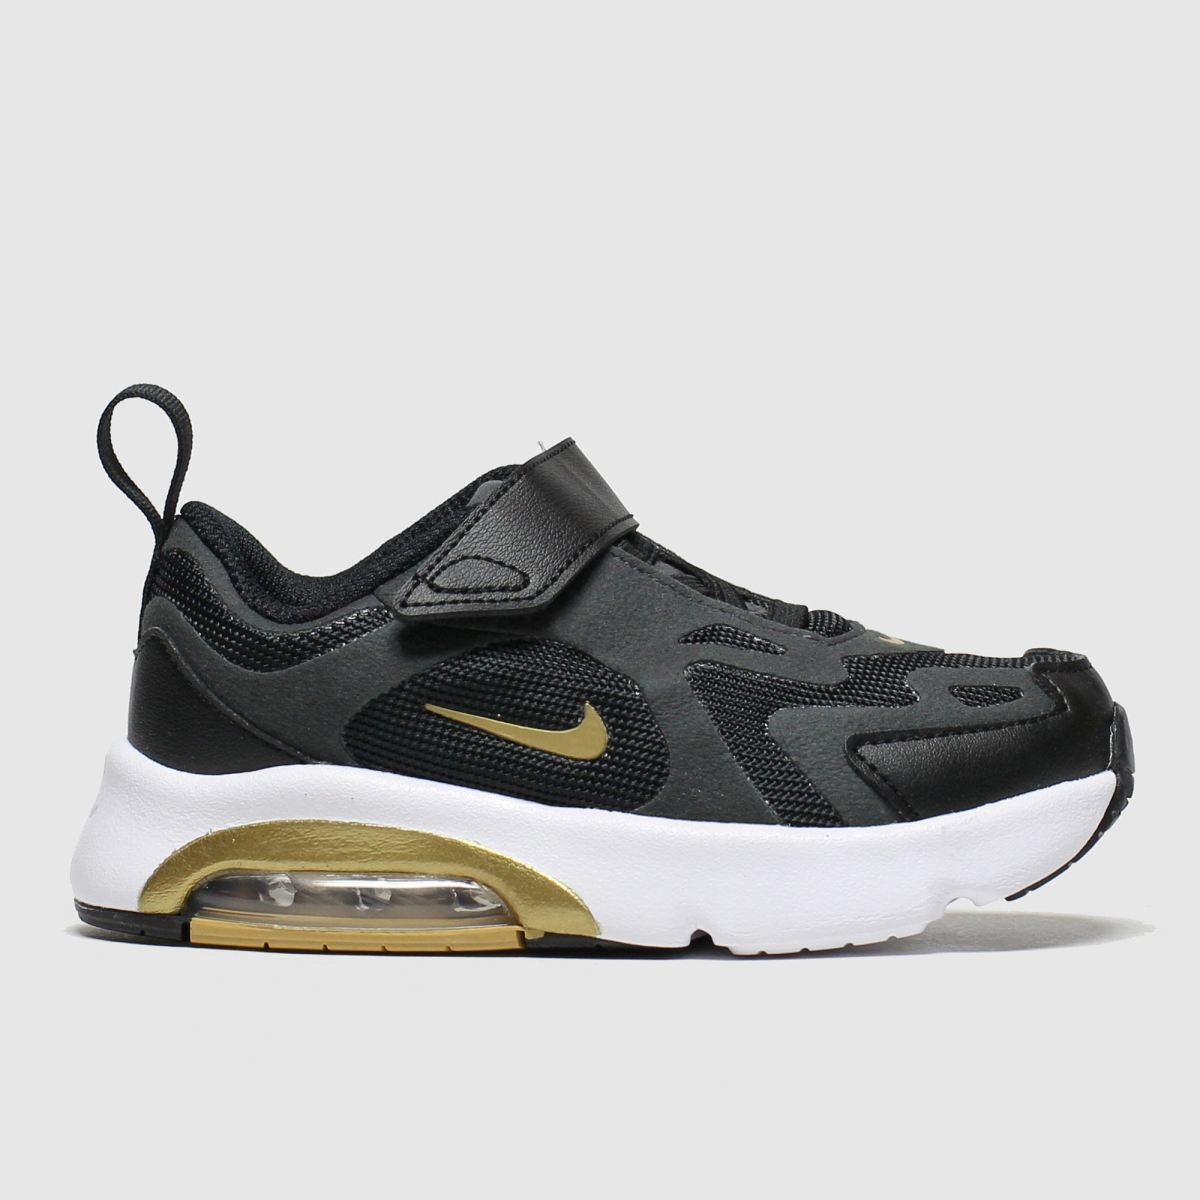 Nike Nike Black & Gold Air Max 200 Trainers Toddler